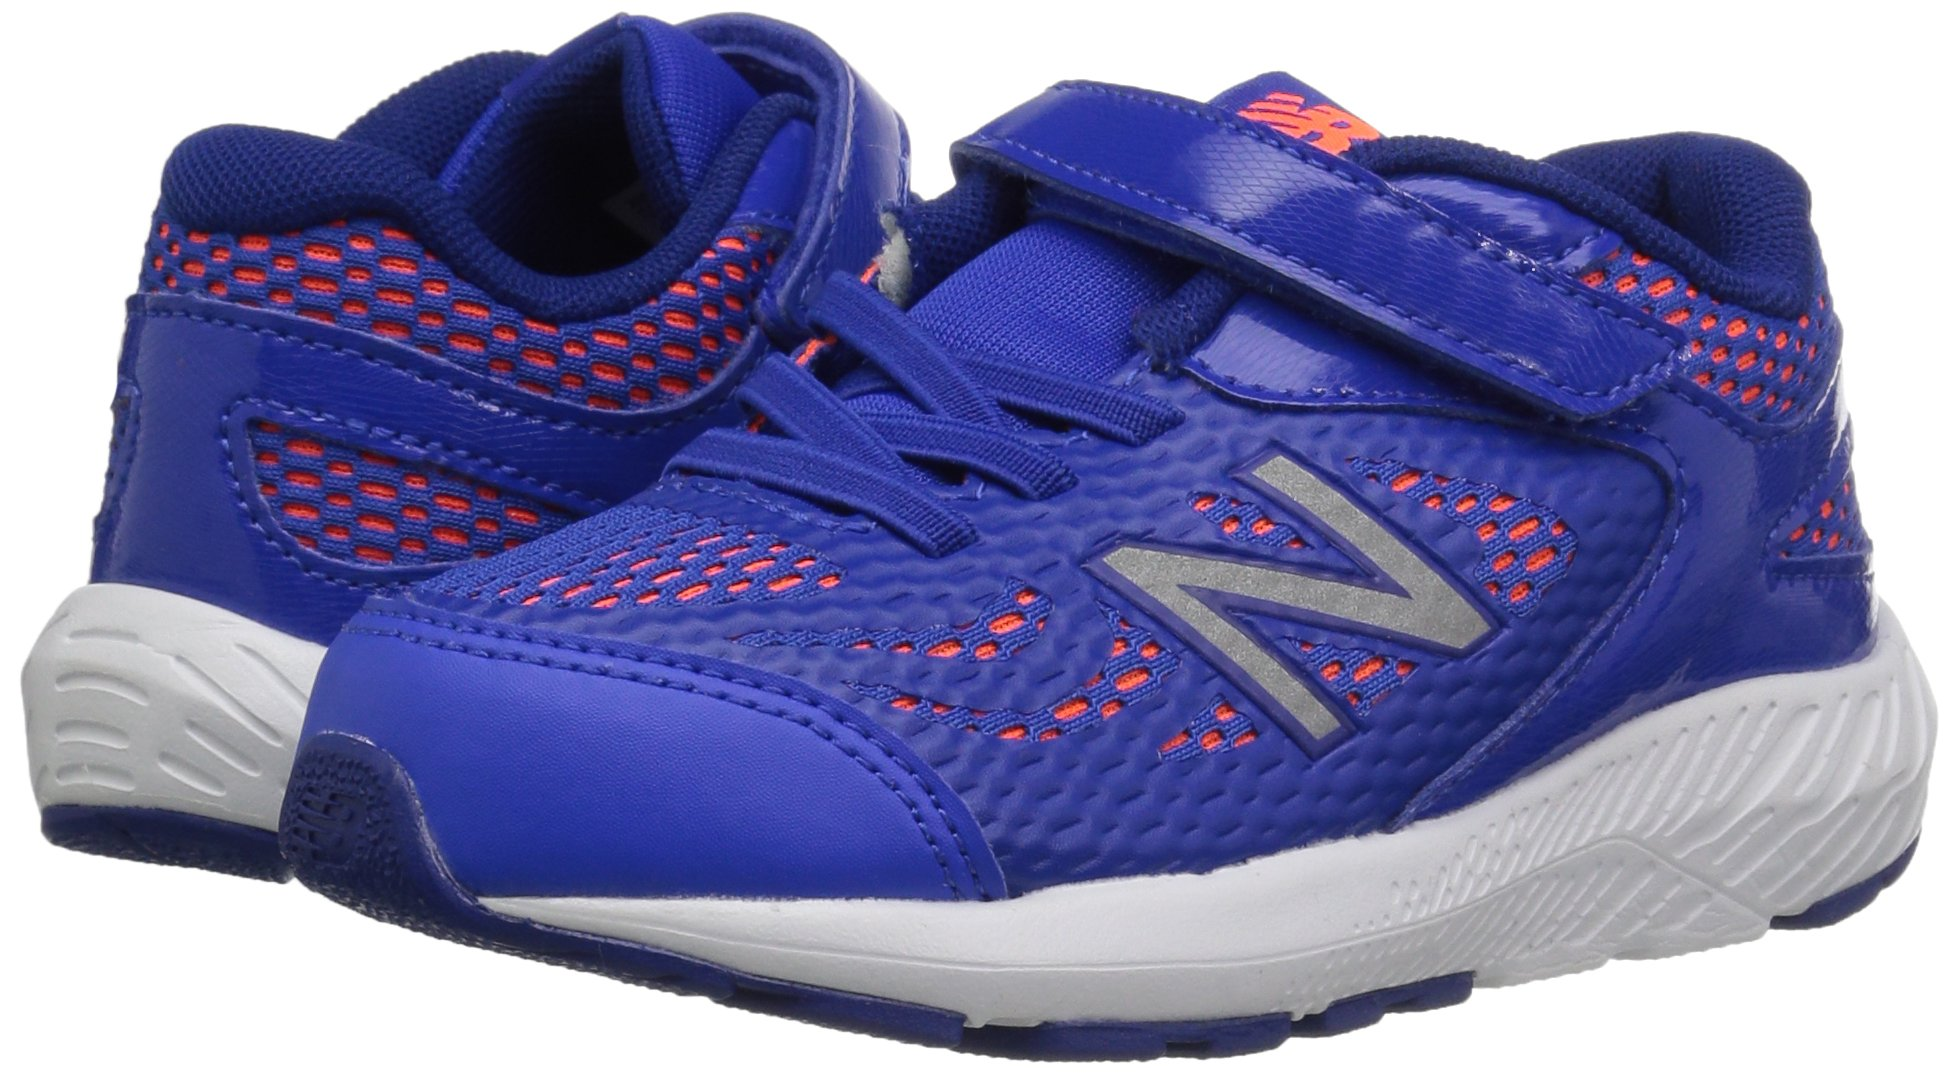 New Balance Boys' 519v1 Hook and Loop Running Shoe Pacific/Dynomite 2 M US Infant by New Balance (Image #6)